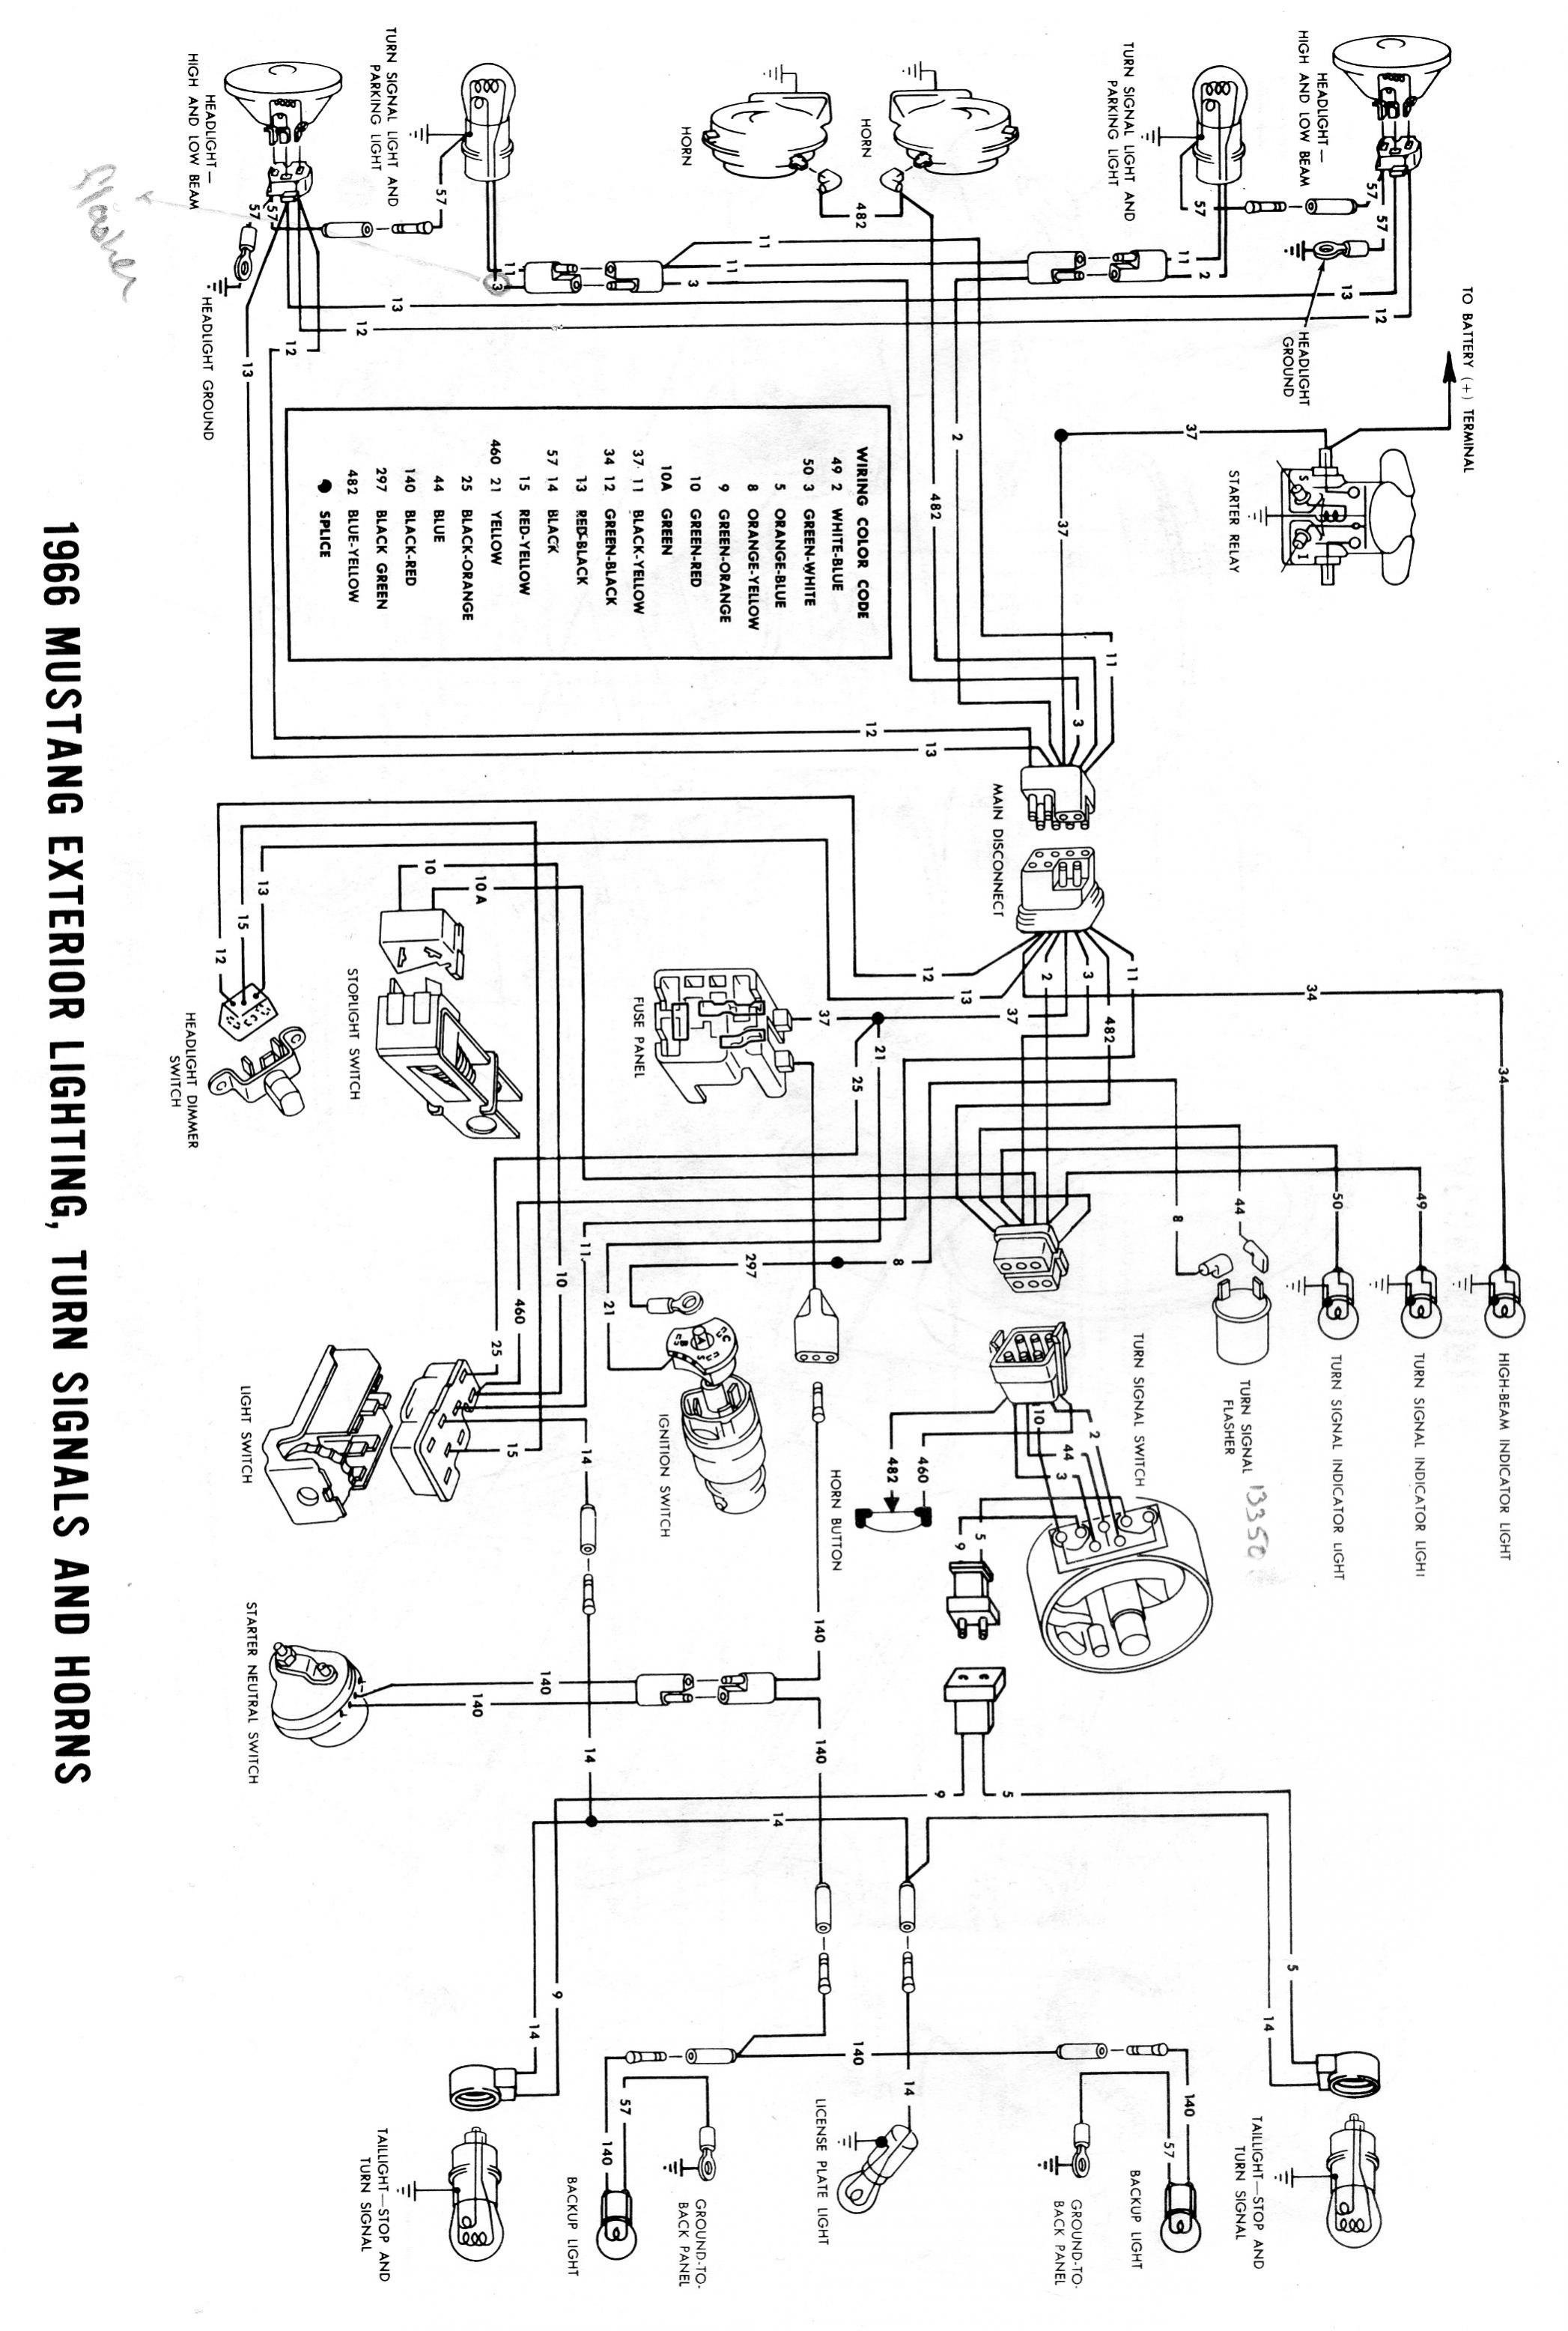 1970 Vw Wiring Harness Free Download Diagram Schematic Wiring